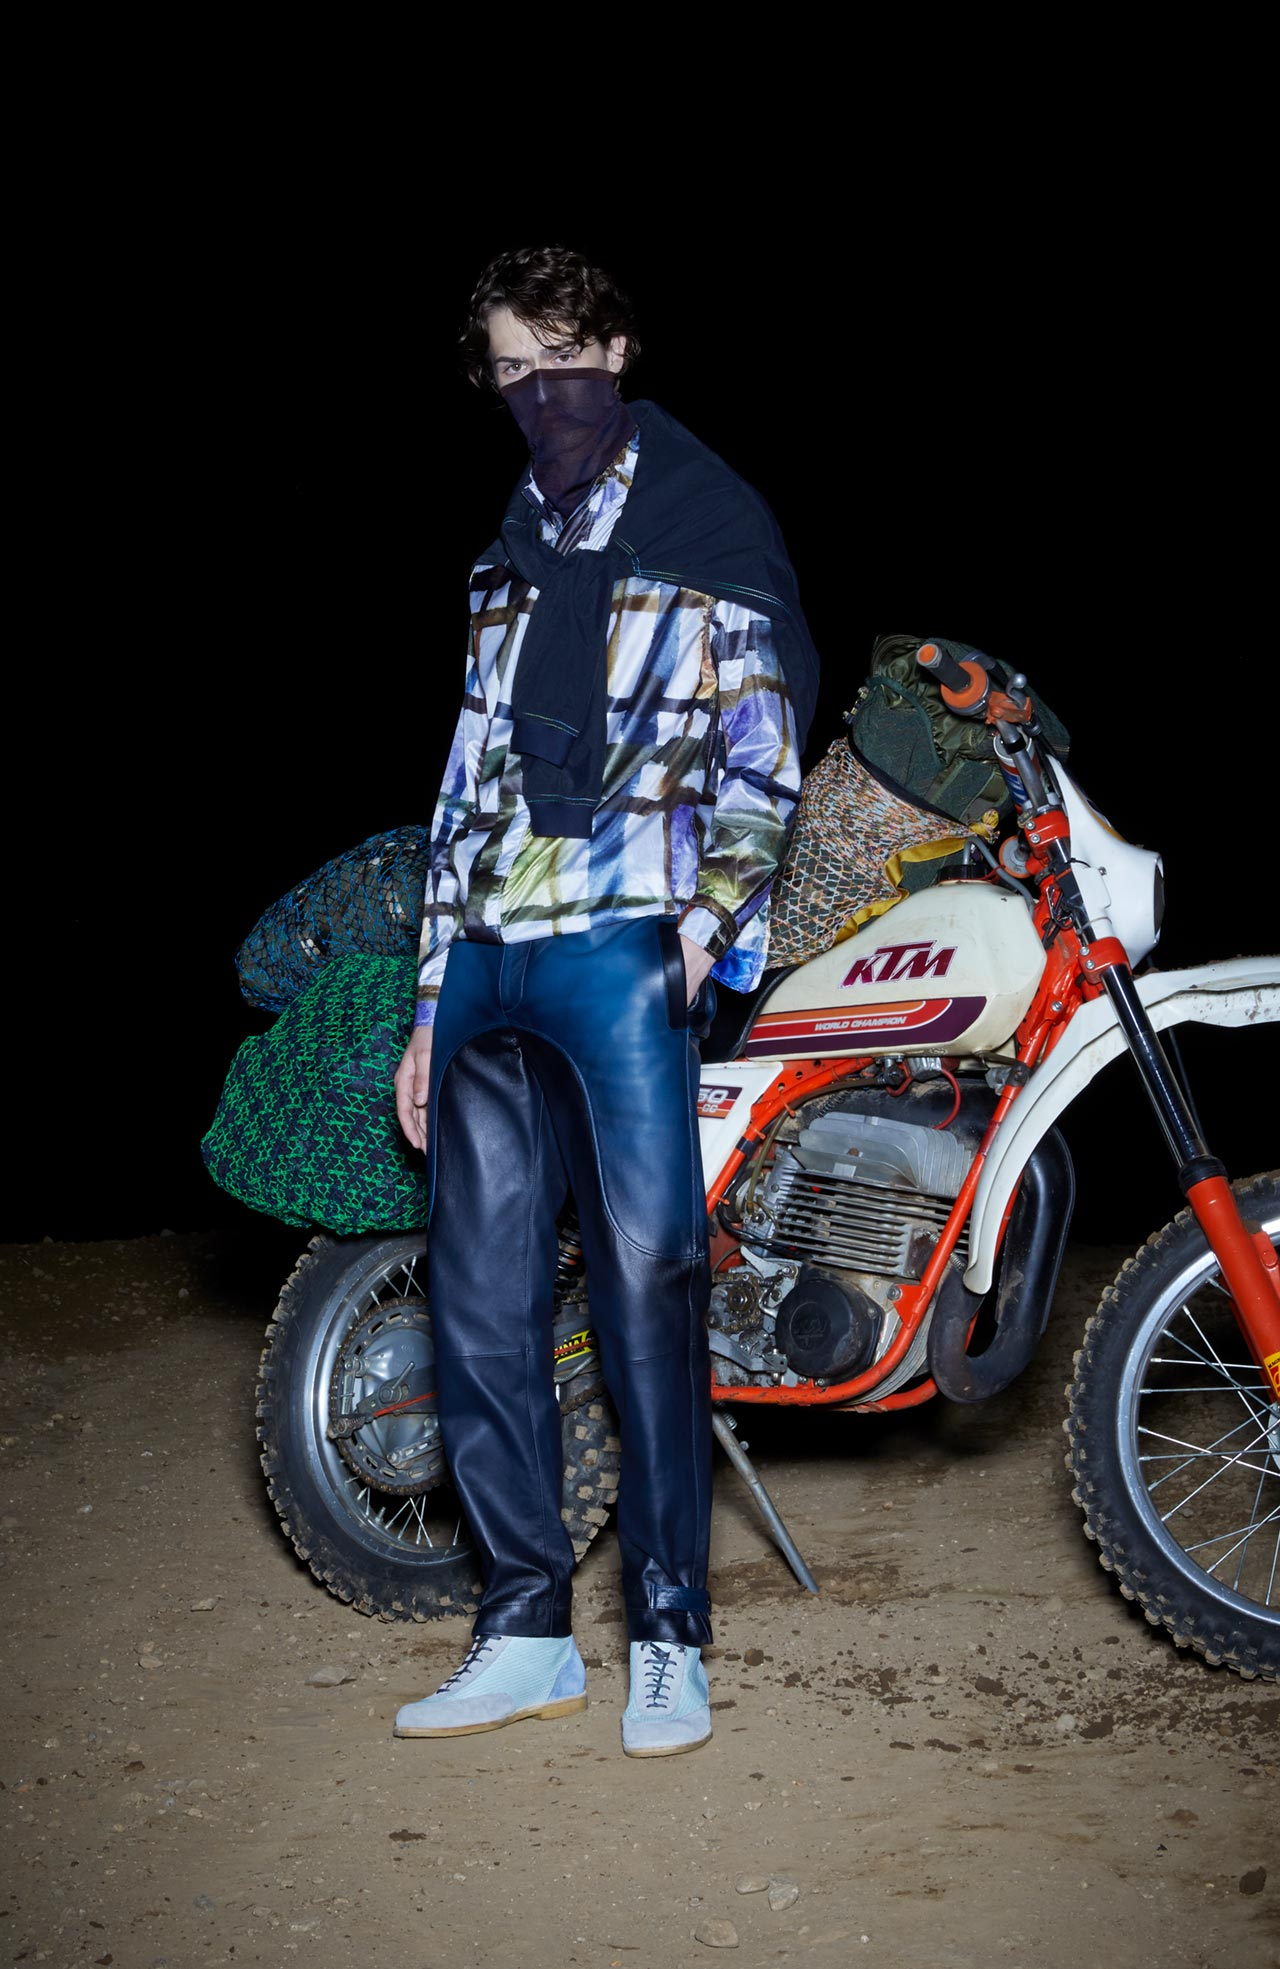 Misson's SS19 collection is inspired by the Paris to Dakar rally